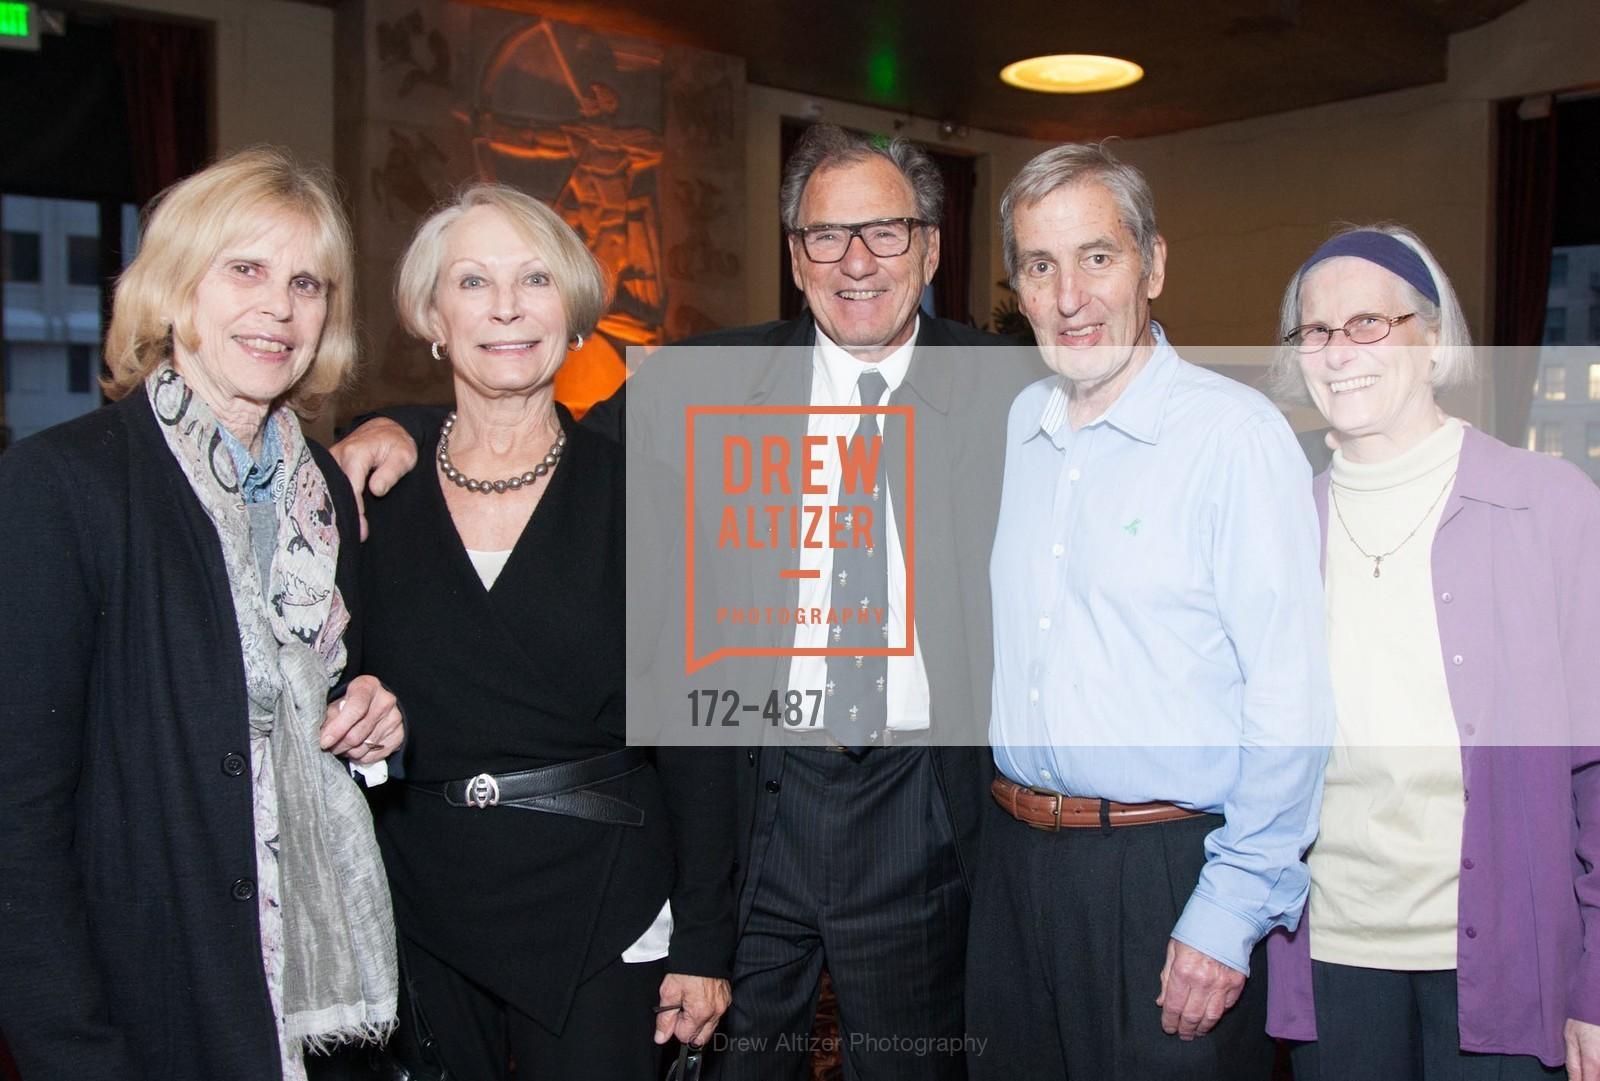 Tania Stepanian, Millicent Buxton-Smith, Michael Stepanian, Elliott Buch Zucker, Leigh Davidson, Campaign Launch - David E. Smith, MD Medical Clinic, US. US, April 1st, 2014,Drew Altizer, Drew Altizer Photography, full-service agency, private events, San Francisco photographer, photographer california